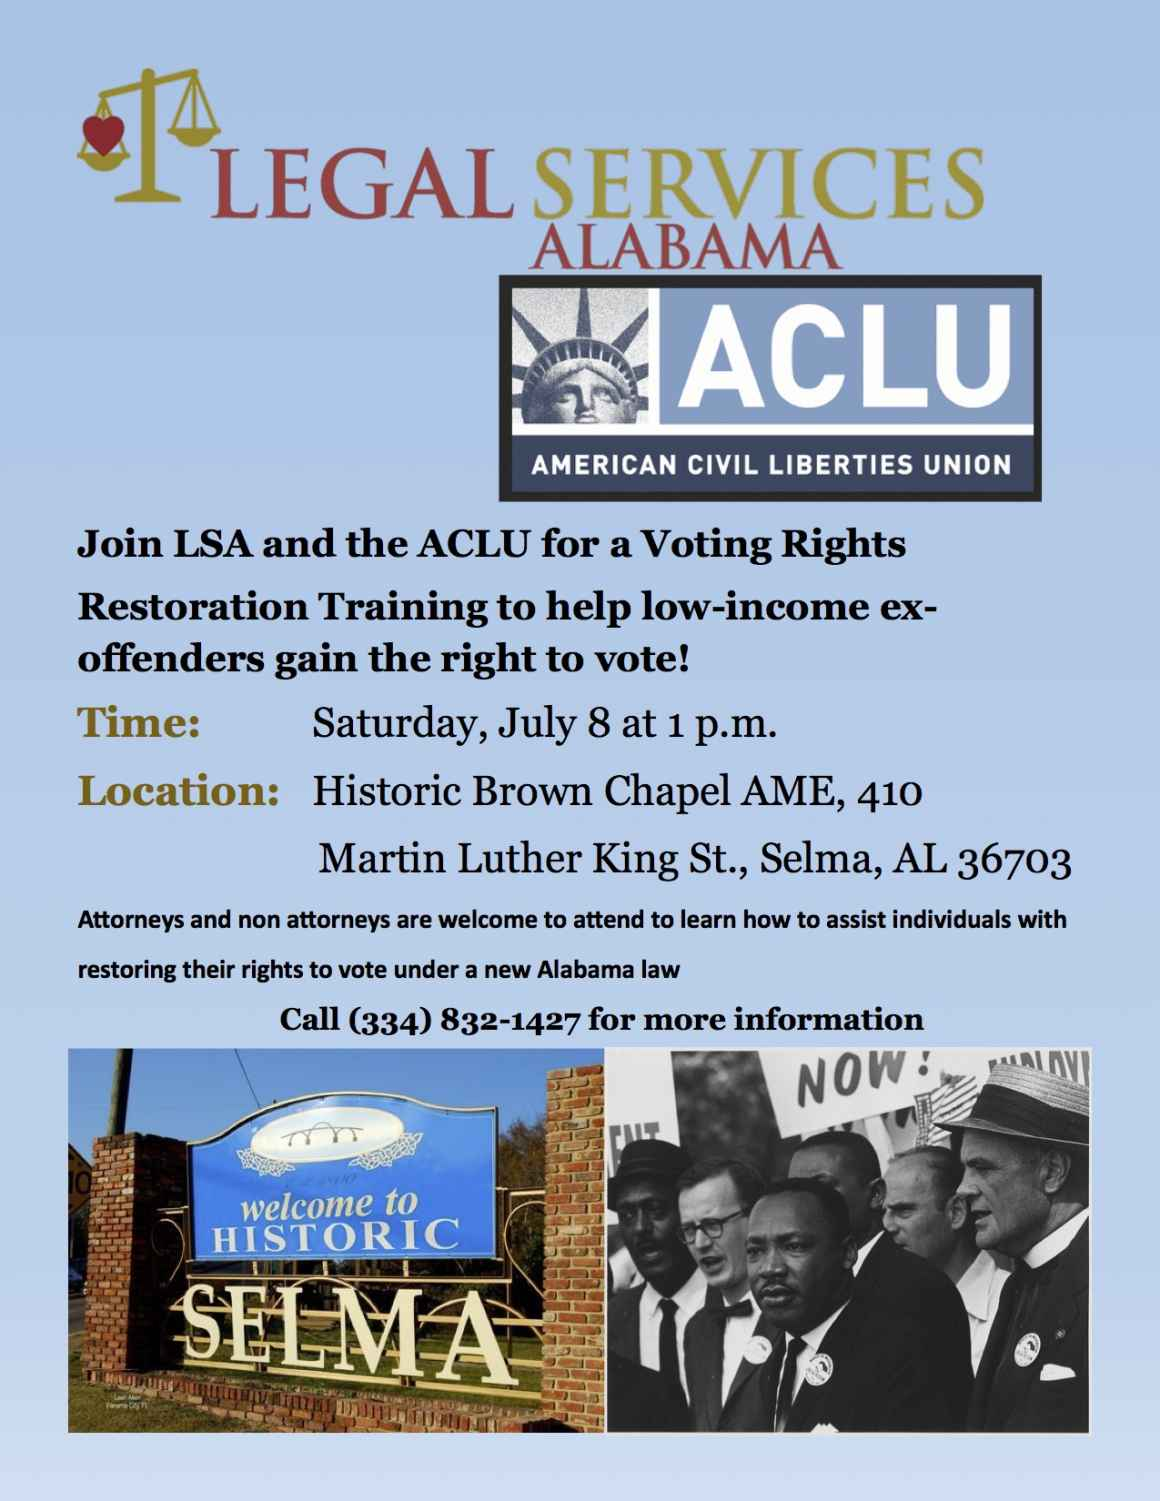 join LSA and ACLU for Voting Rights Restoration Training flyer